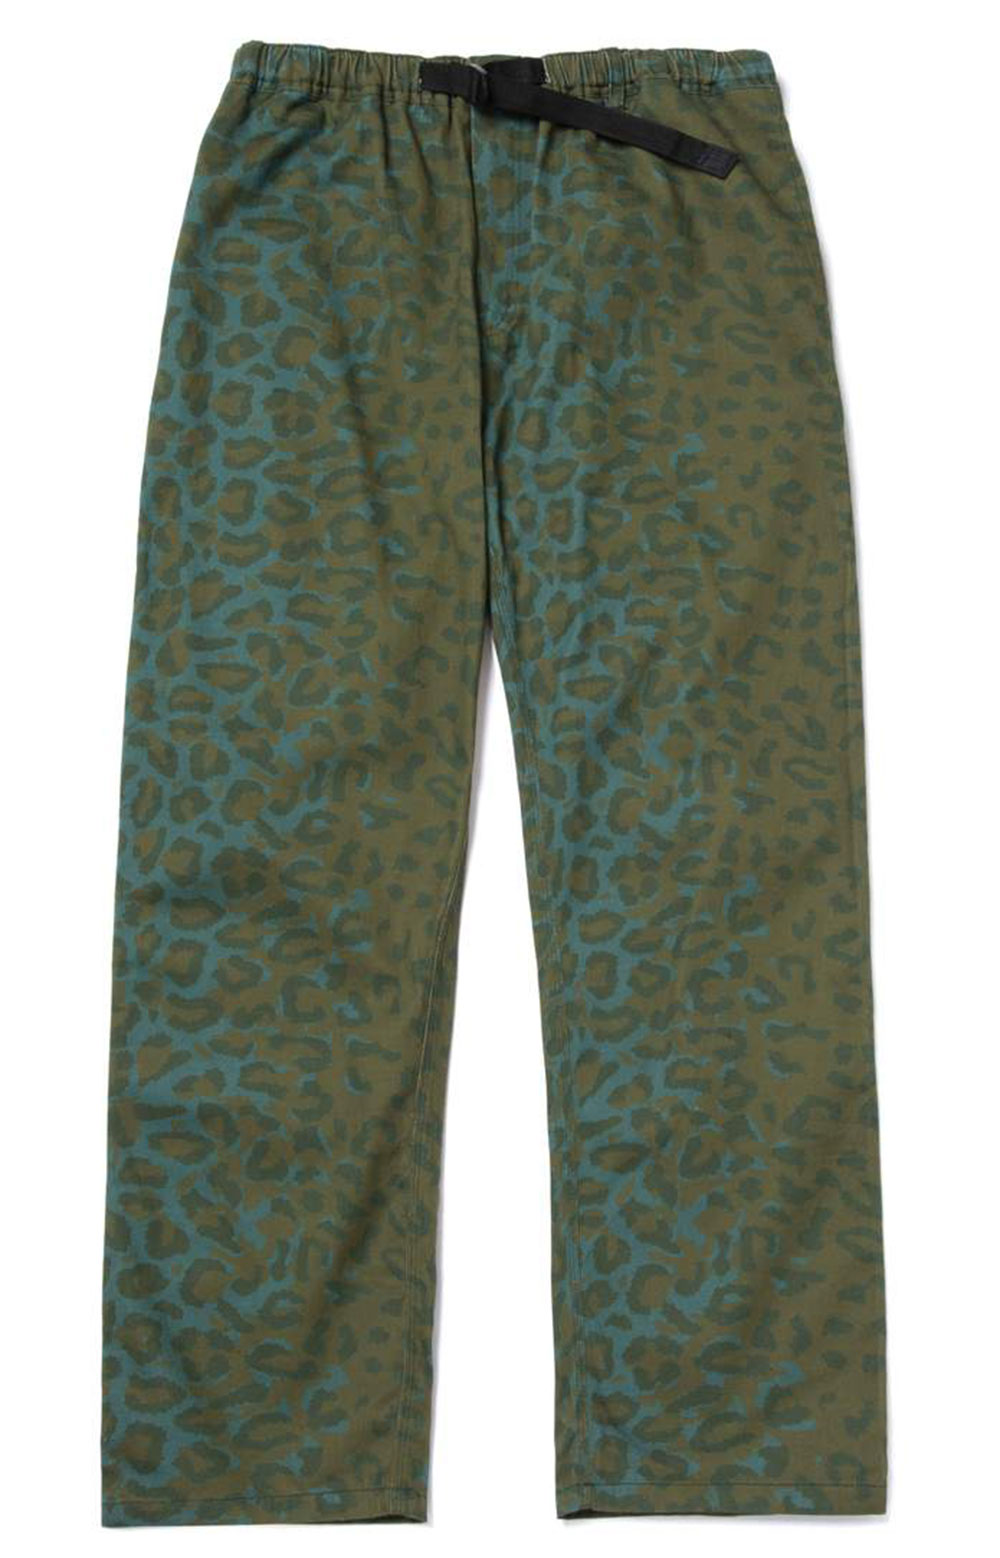 Printed Runyon Easy Pant - Leopard Camo